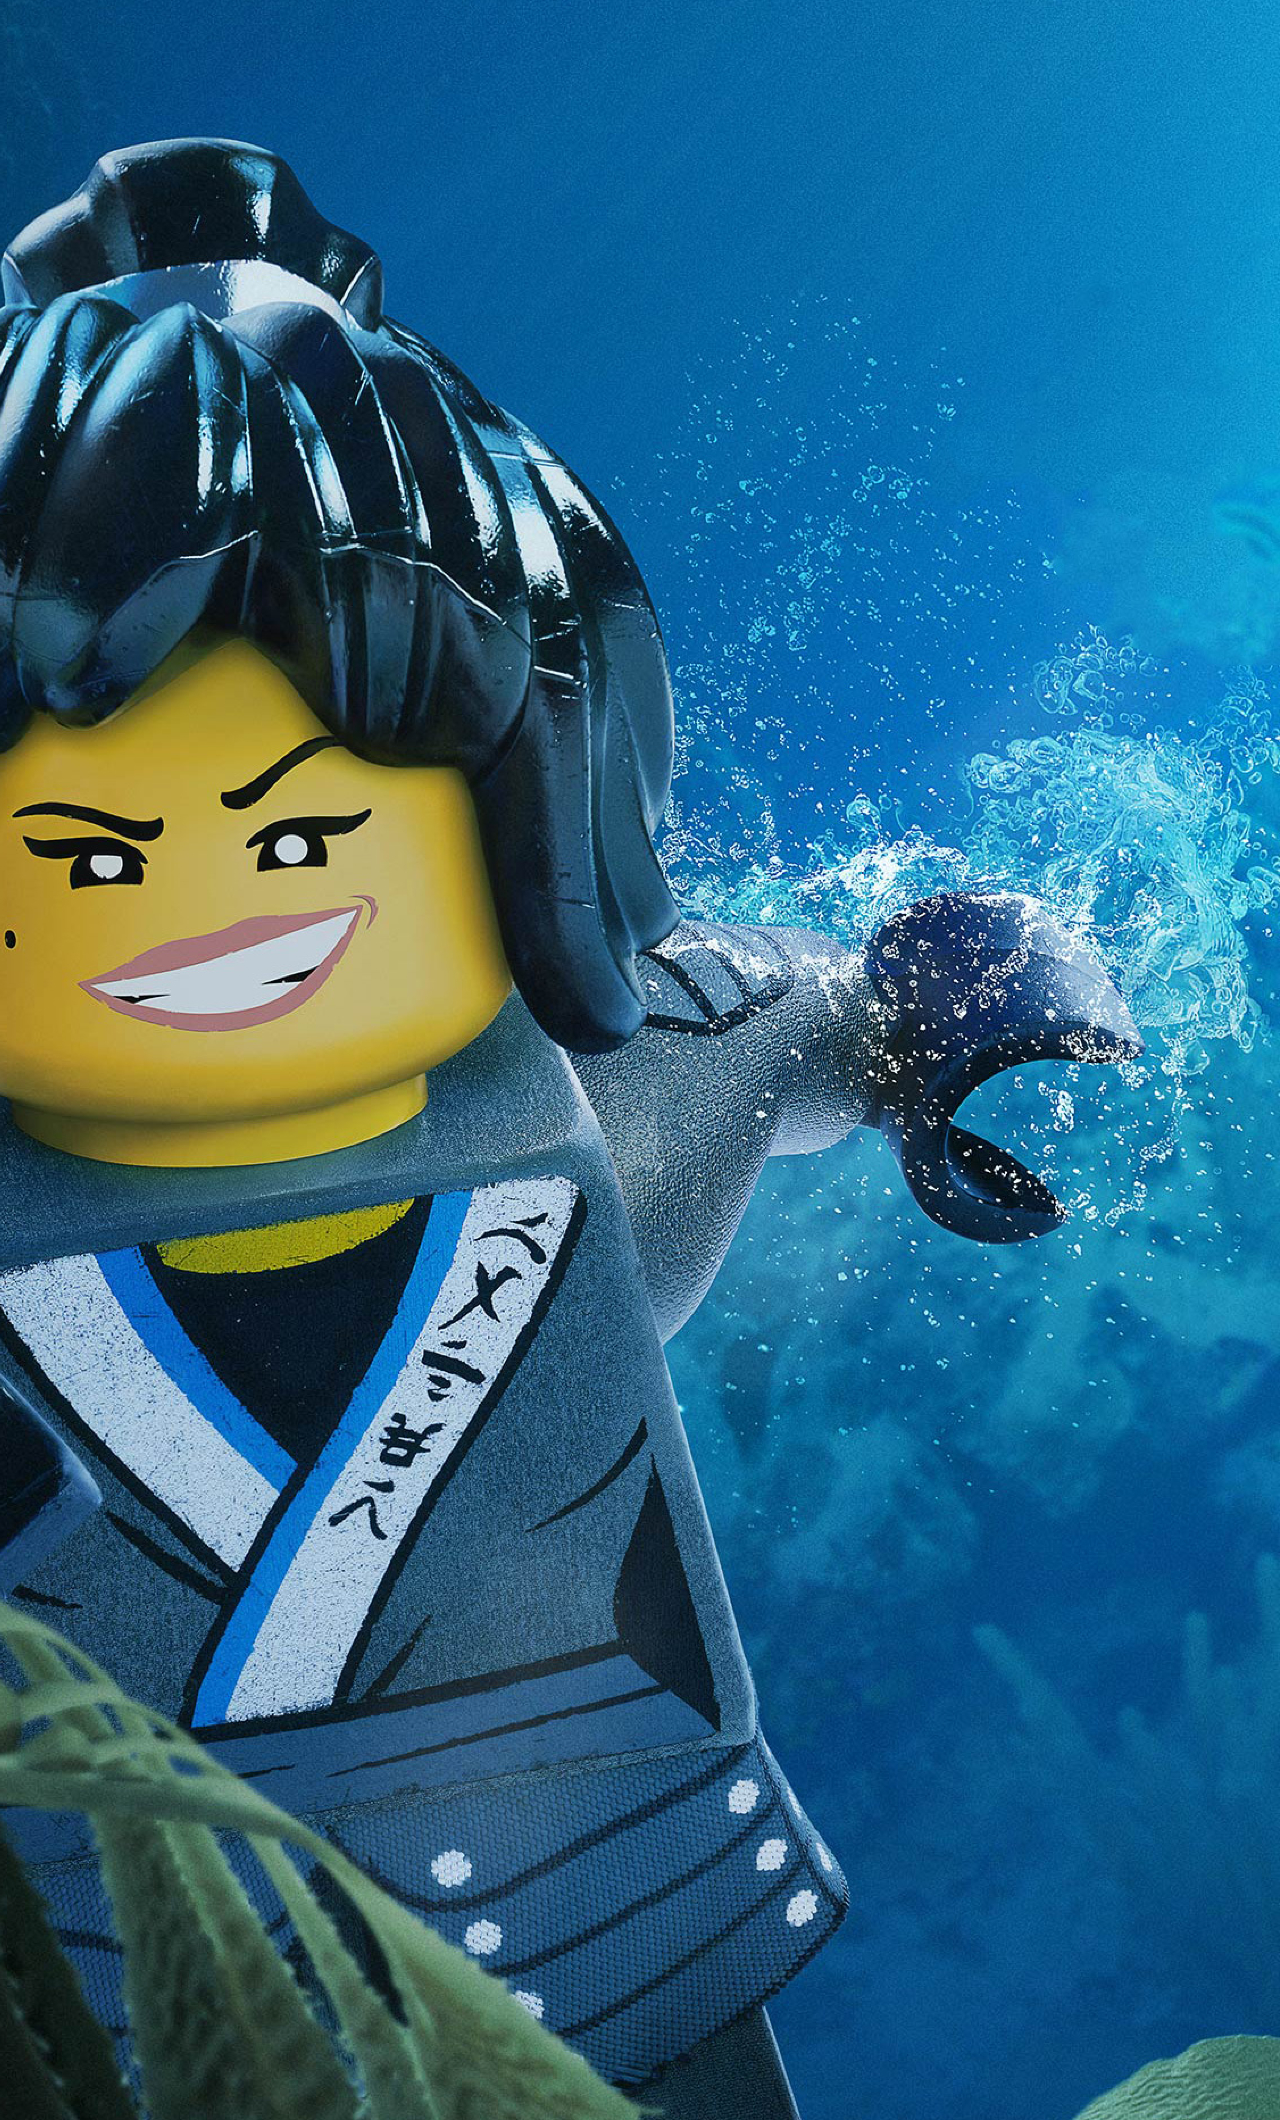 Nya from kai the lego ninjago movie full hd 2k wallpaper - Ninjago phone wallpaper ...